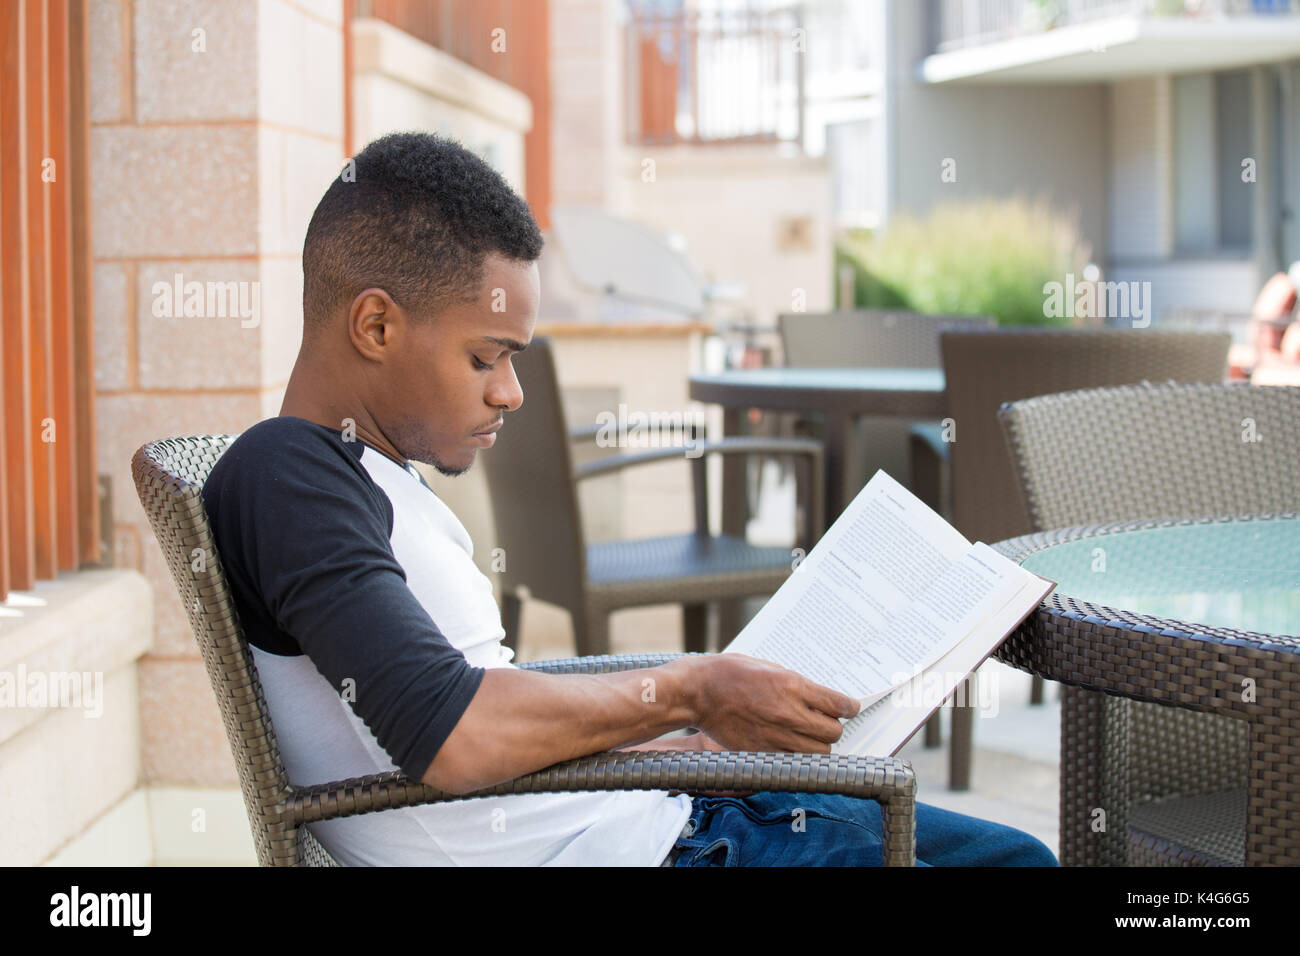 Closeup portrait, smart young man with intense concentration, sitting down and reading book, isolated outdoors background.  knowledge is power concept - Stock Image